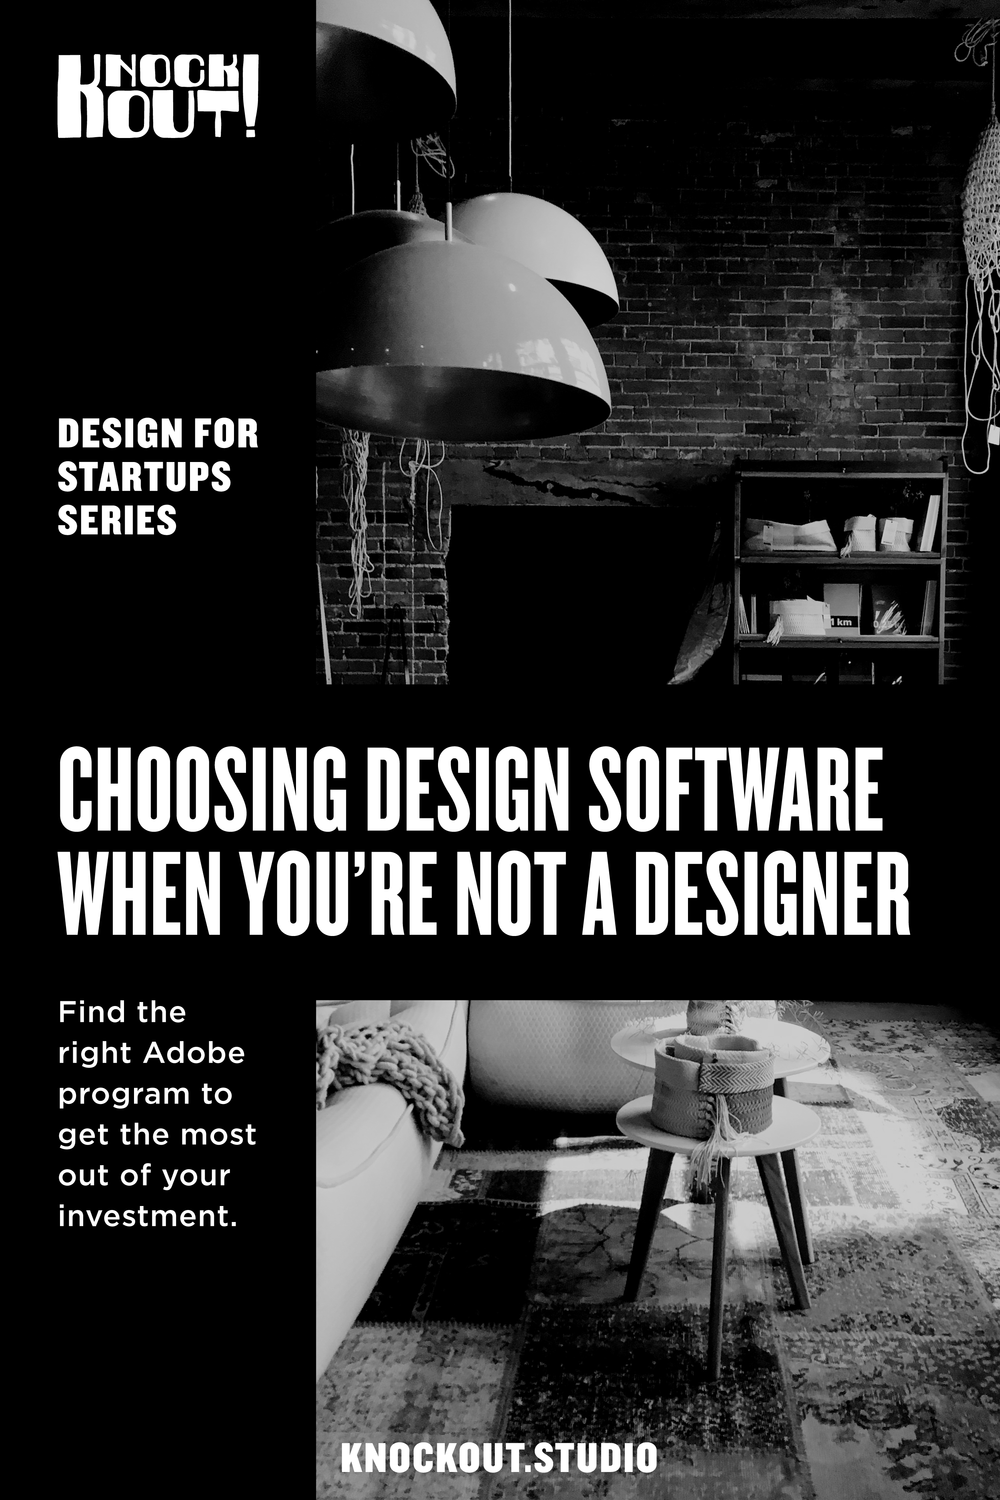 Choosing Design Software When You're Not a Designer. Find the right Adobe program to get the most out of your investment.